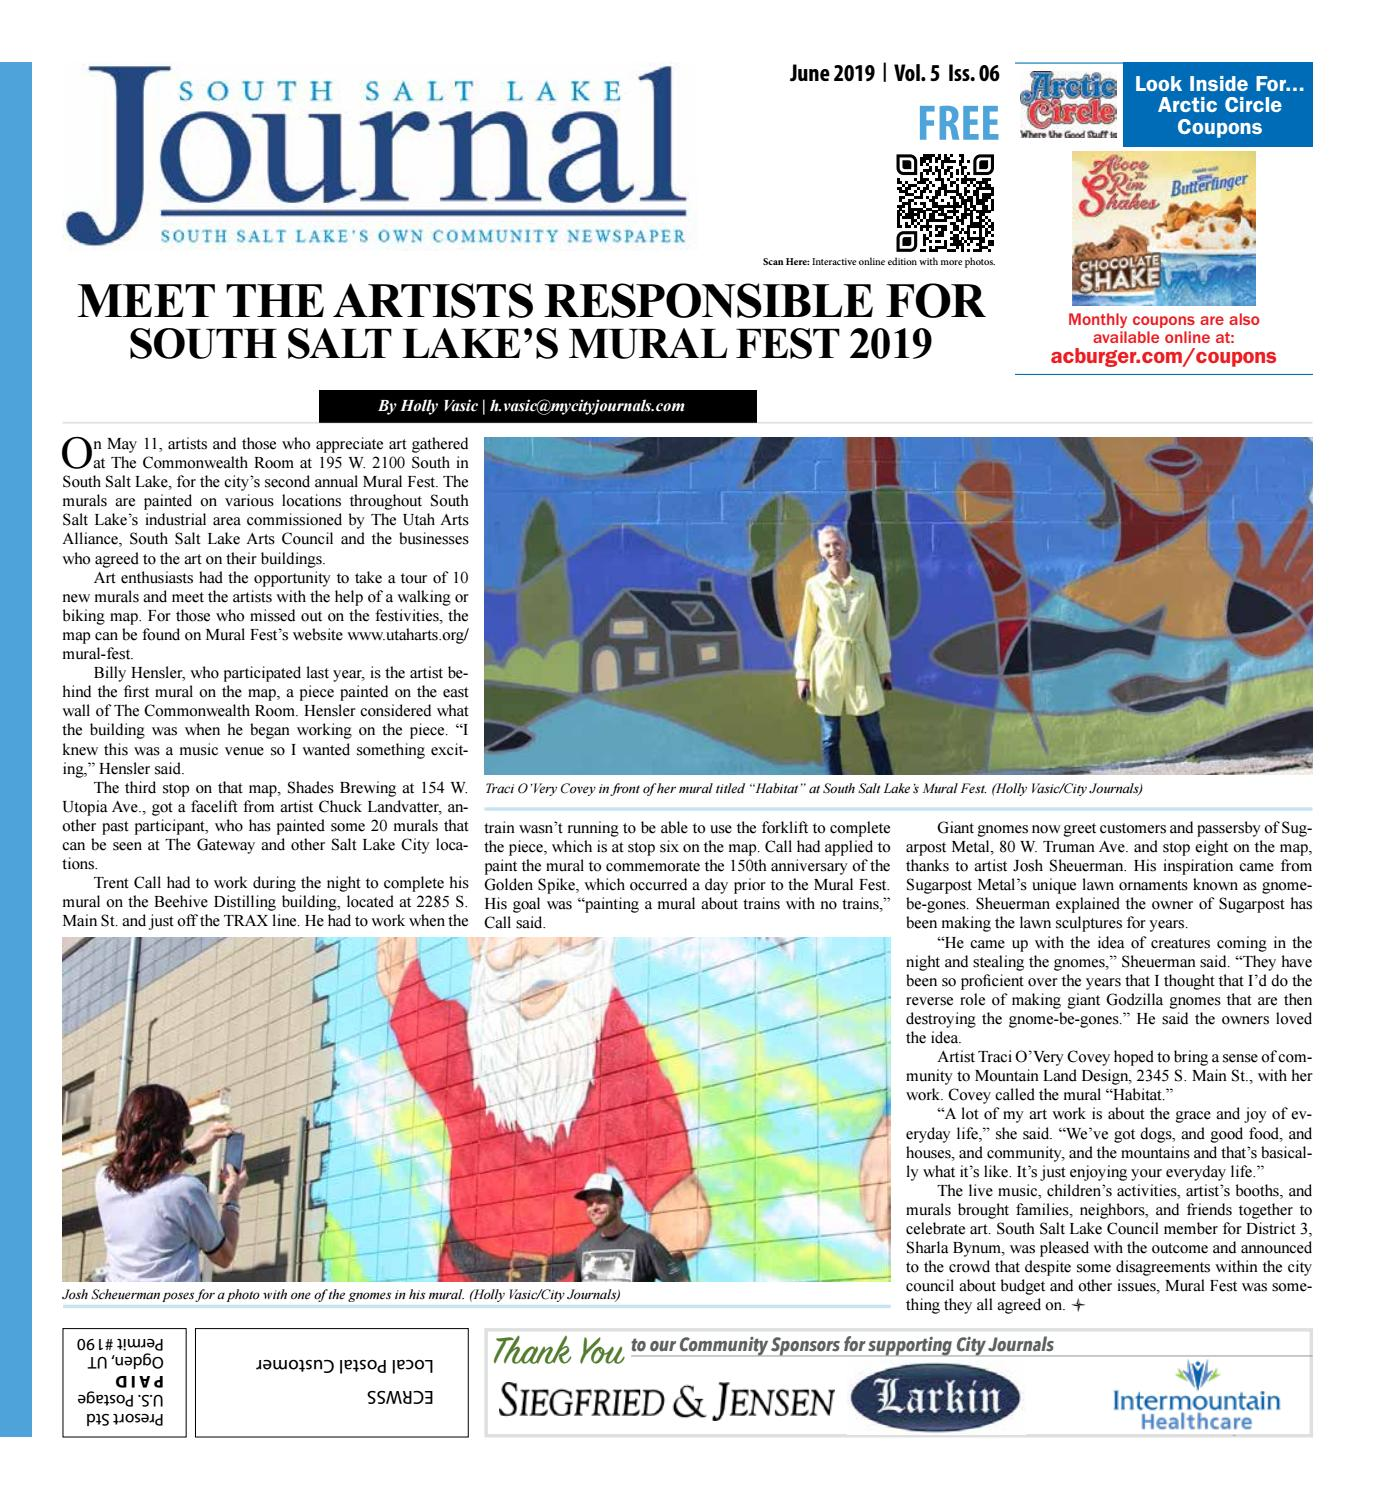 South Salt Lake Journal June 2019 by The City Journals - issuu